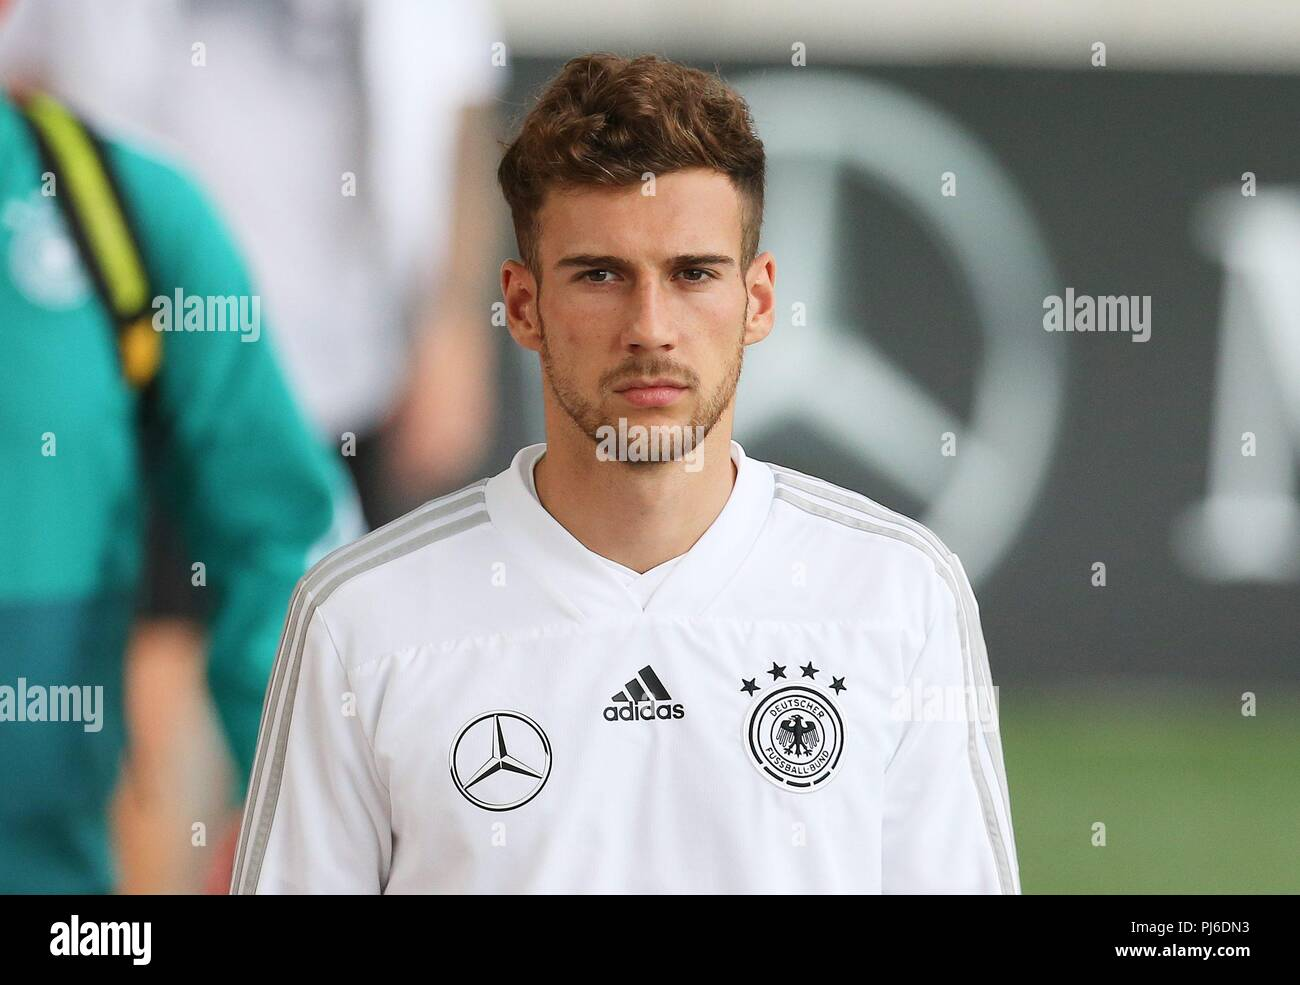 firo: 04.09.2018, Fuvuball, football, national team, training, Leon Goretzka, DFB, half figure, Germany | usage worldwide - Stock Image